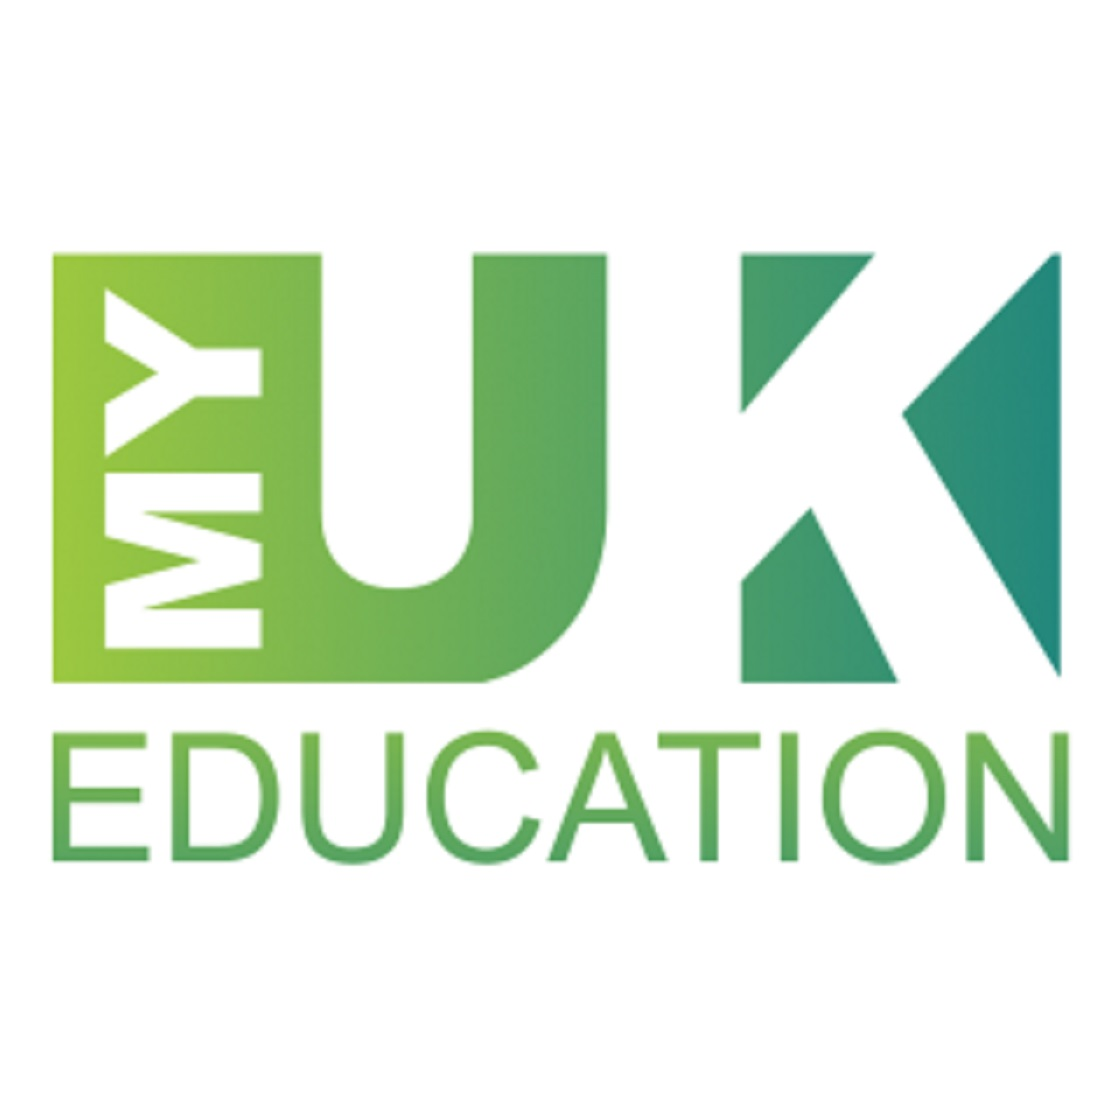 My UK Education